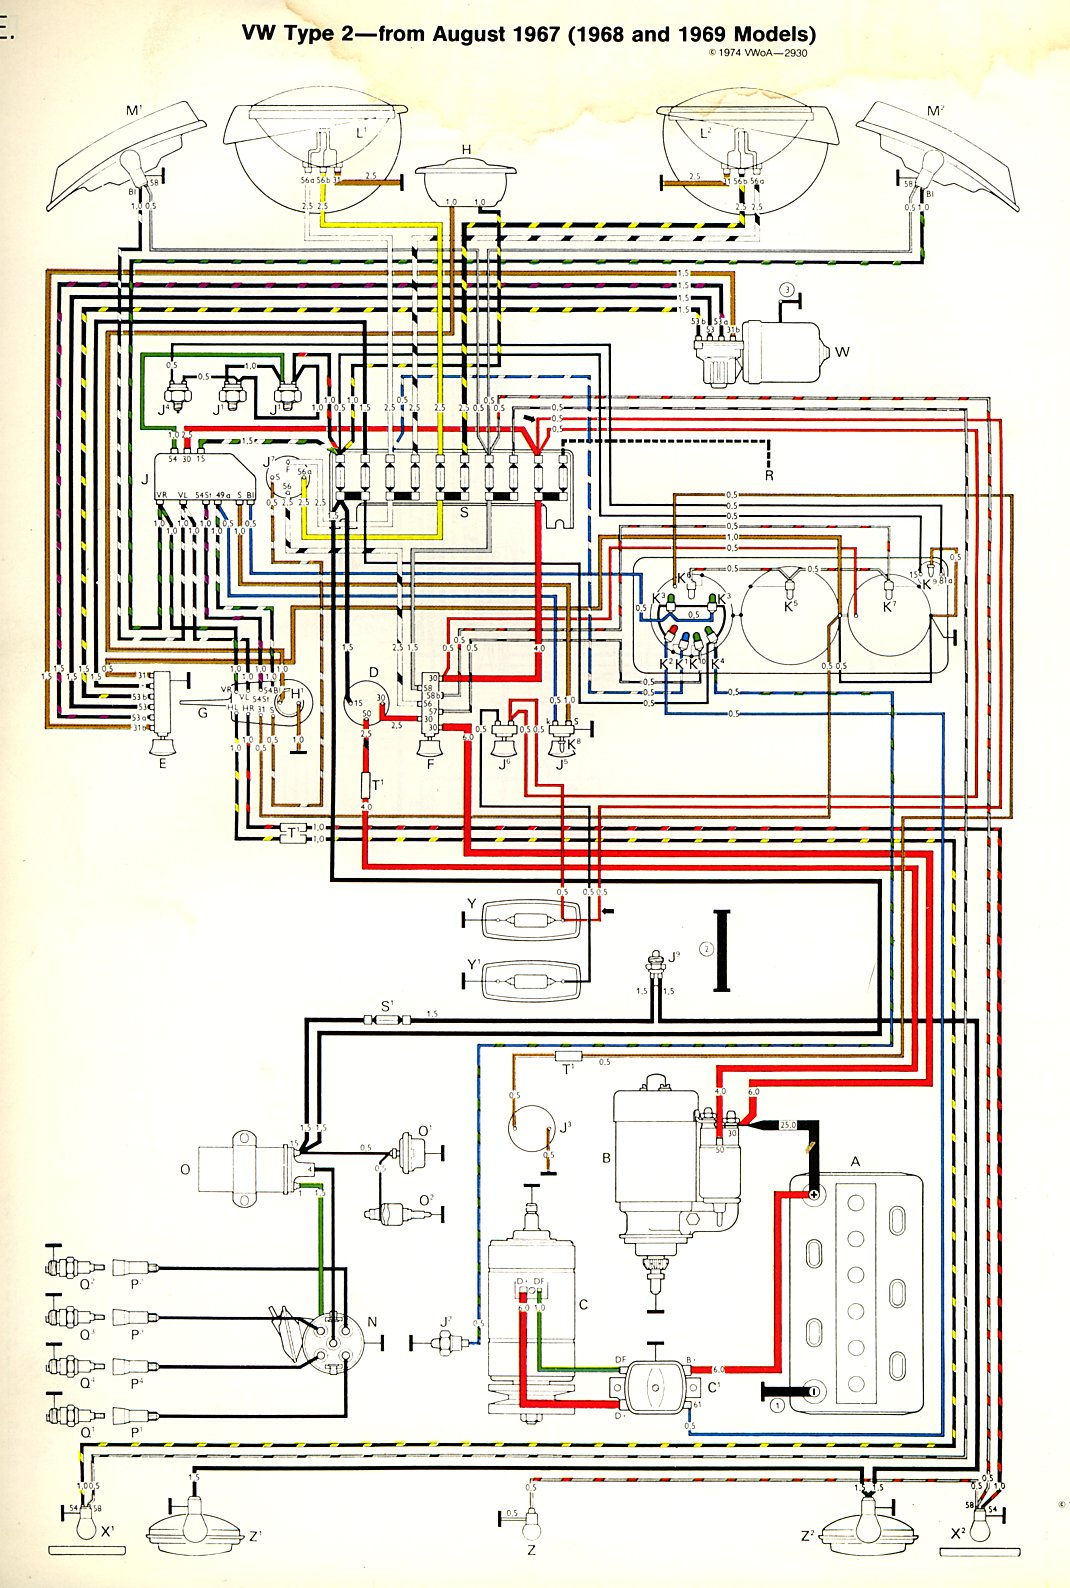 1973 vw bus wiring harness schematic wiring diagram 1971 VW Bus Specs